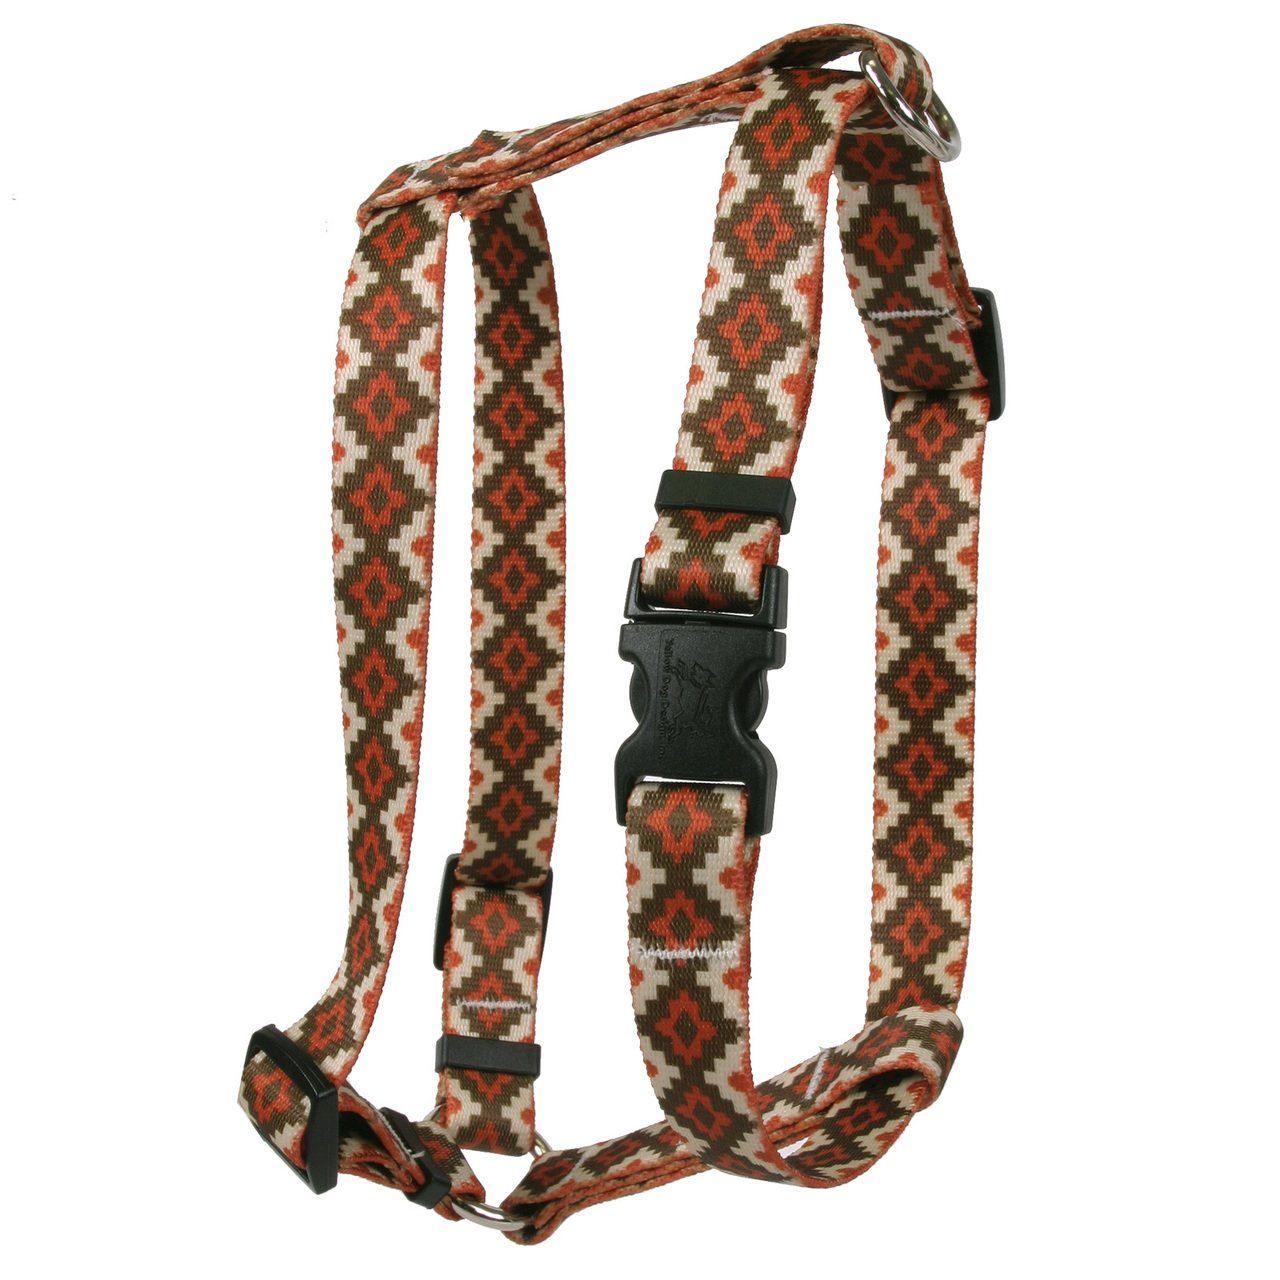 Yellow Dog Design Aztec Sand Roman Style H Dog Harness Fits Chest Circumference of 28 to 36'', X-Large/1'' Wide